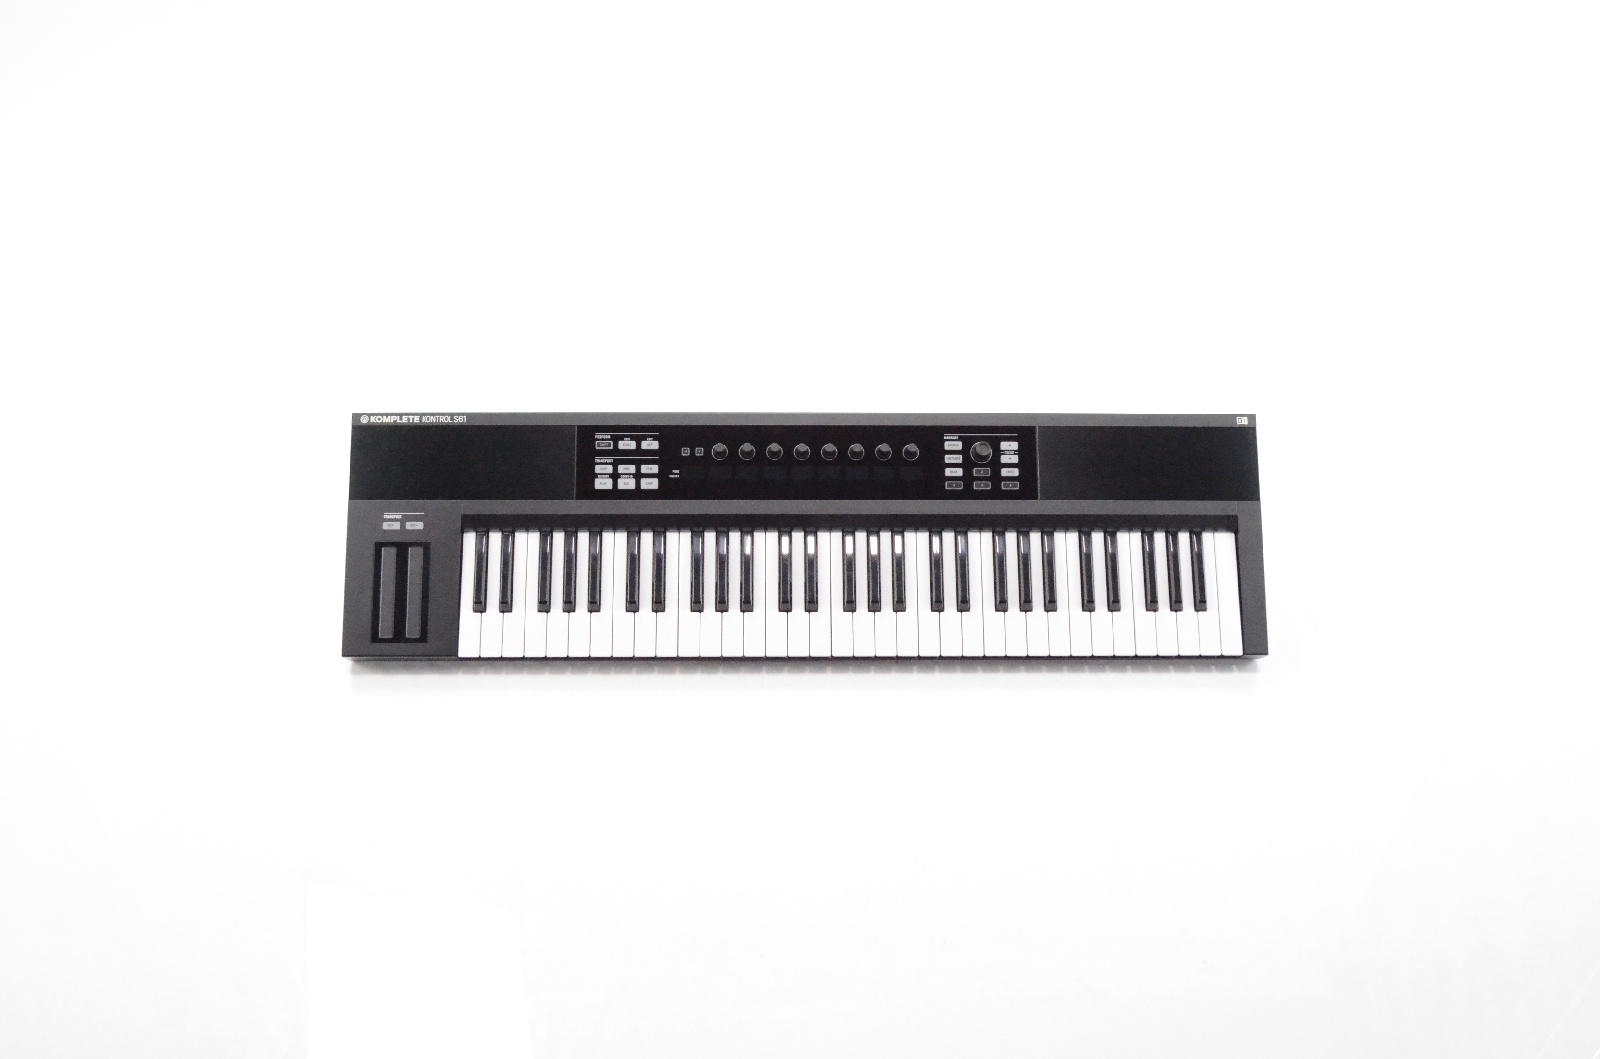 Native Instruments Komplete Kontrol S61 61 Key USB Keyboard Controller #32651